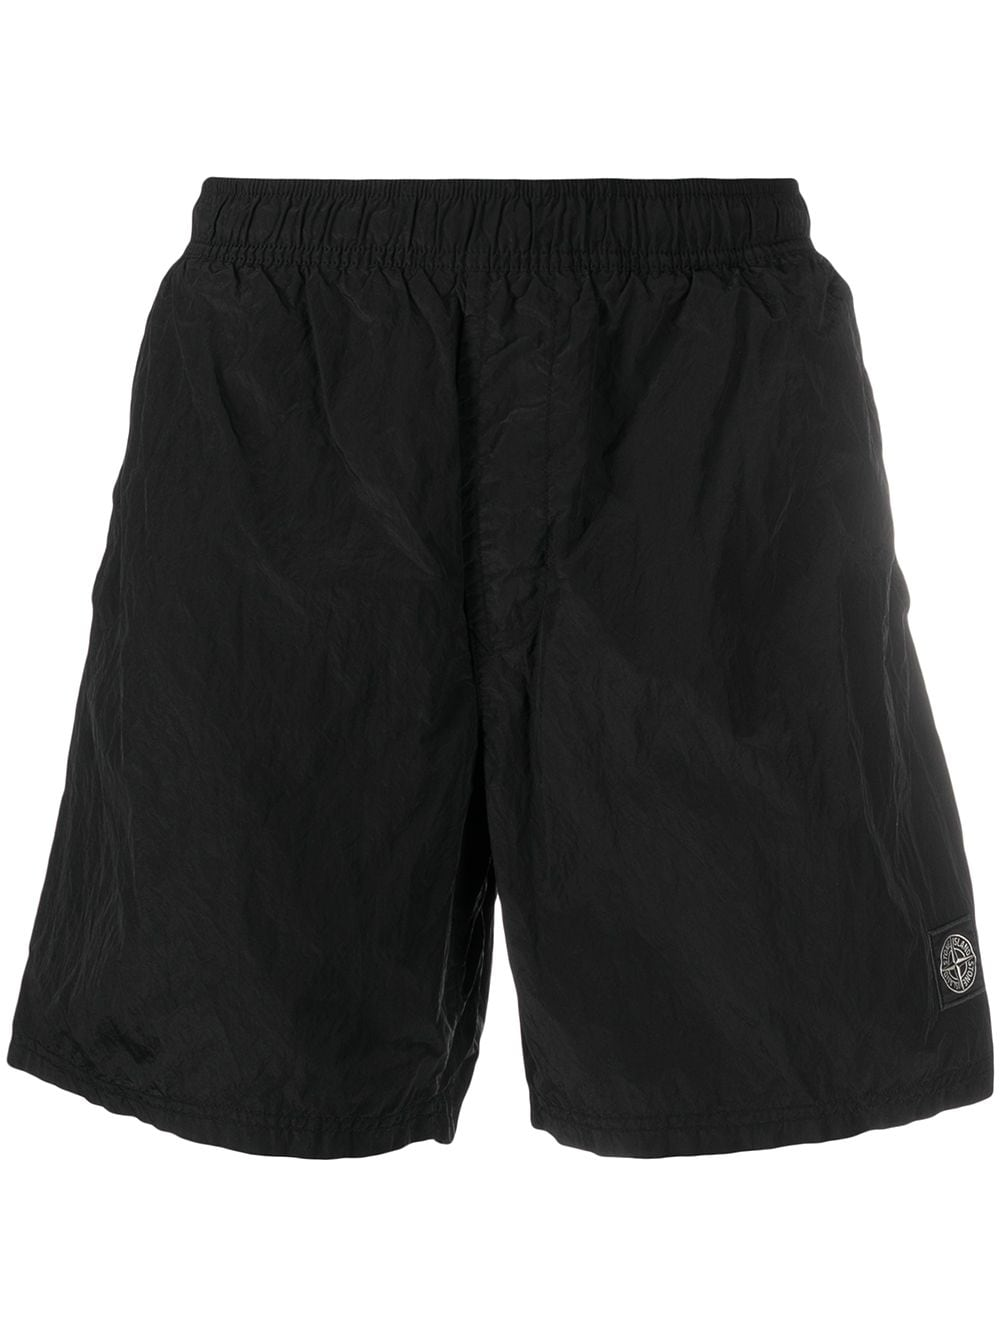 <p class='small-title'>STONE ISLAND</p>Shorts